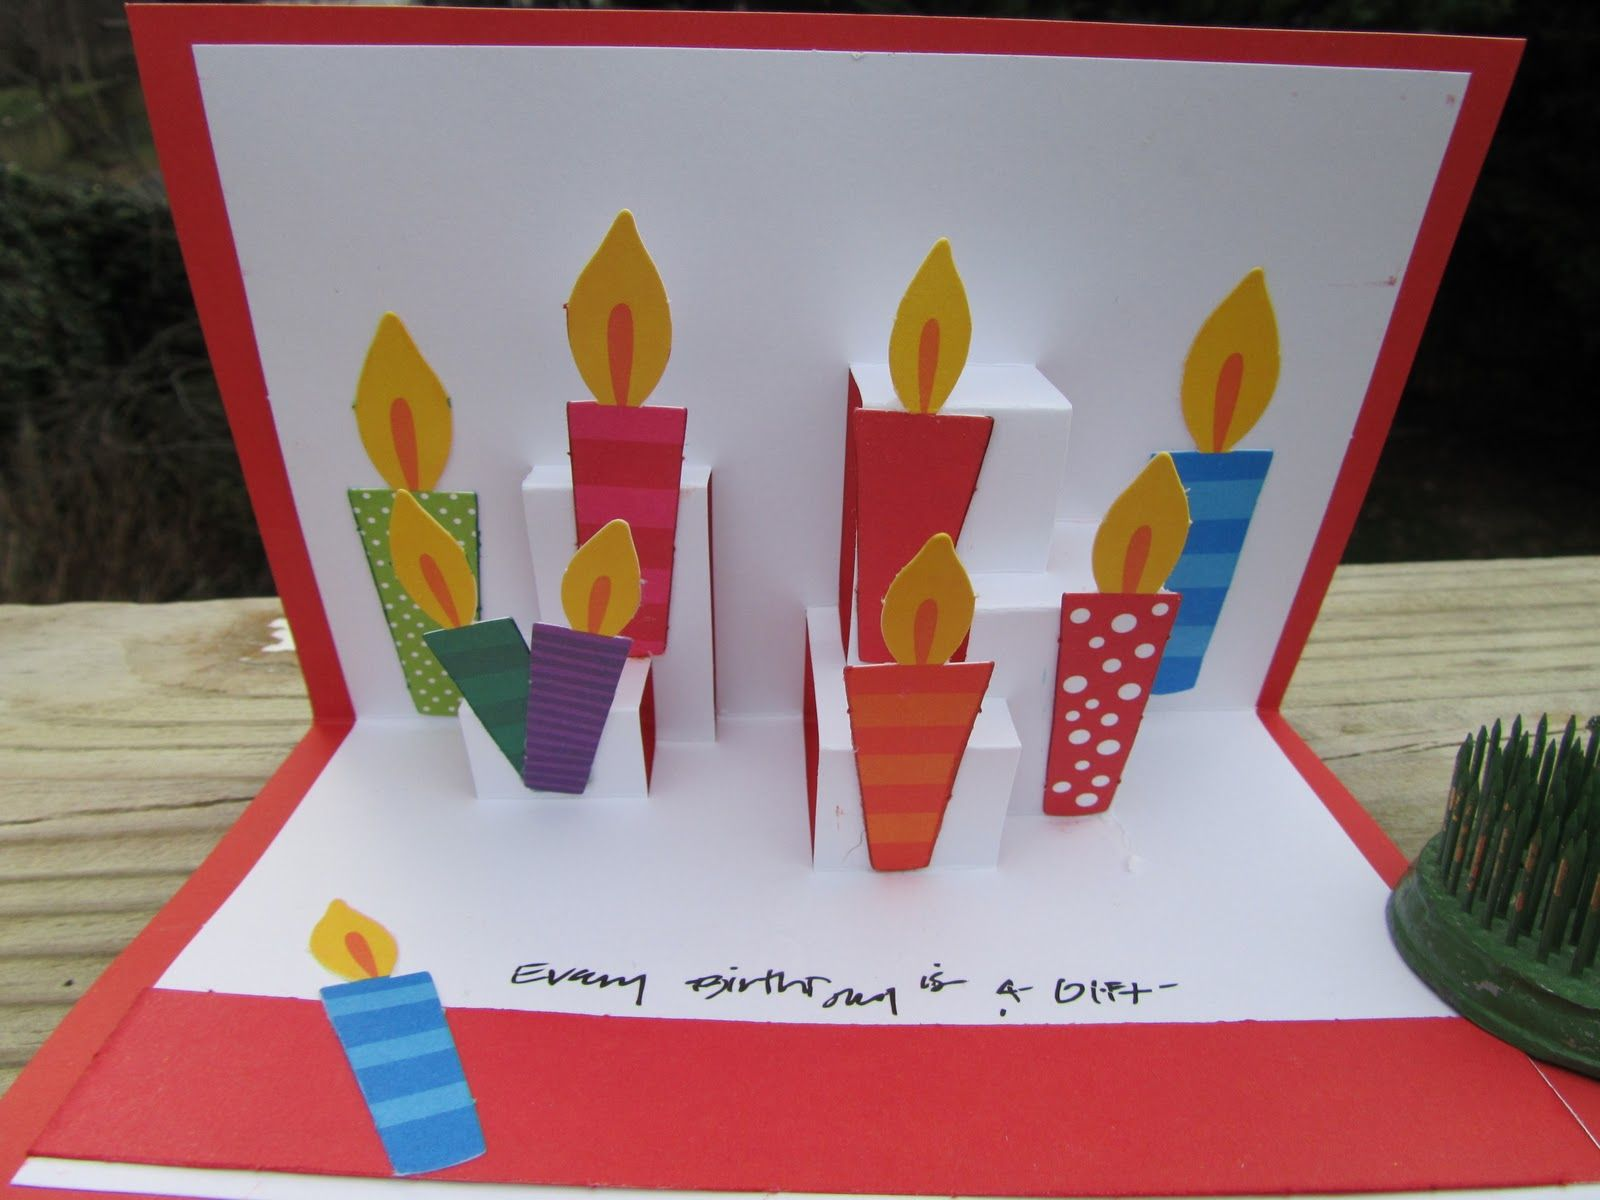 Candle birthday card in pop up style for boyfriend cards candle birthday card in pop up style for boyfriend bookmarktalkfo Gallery